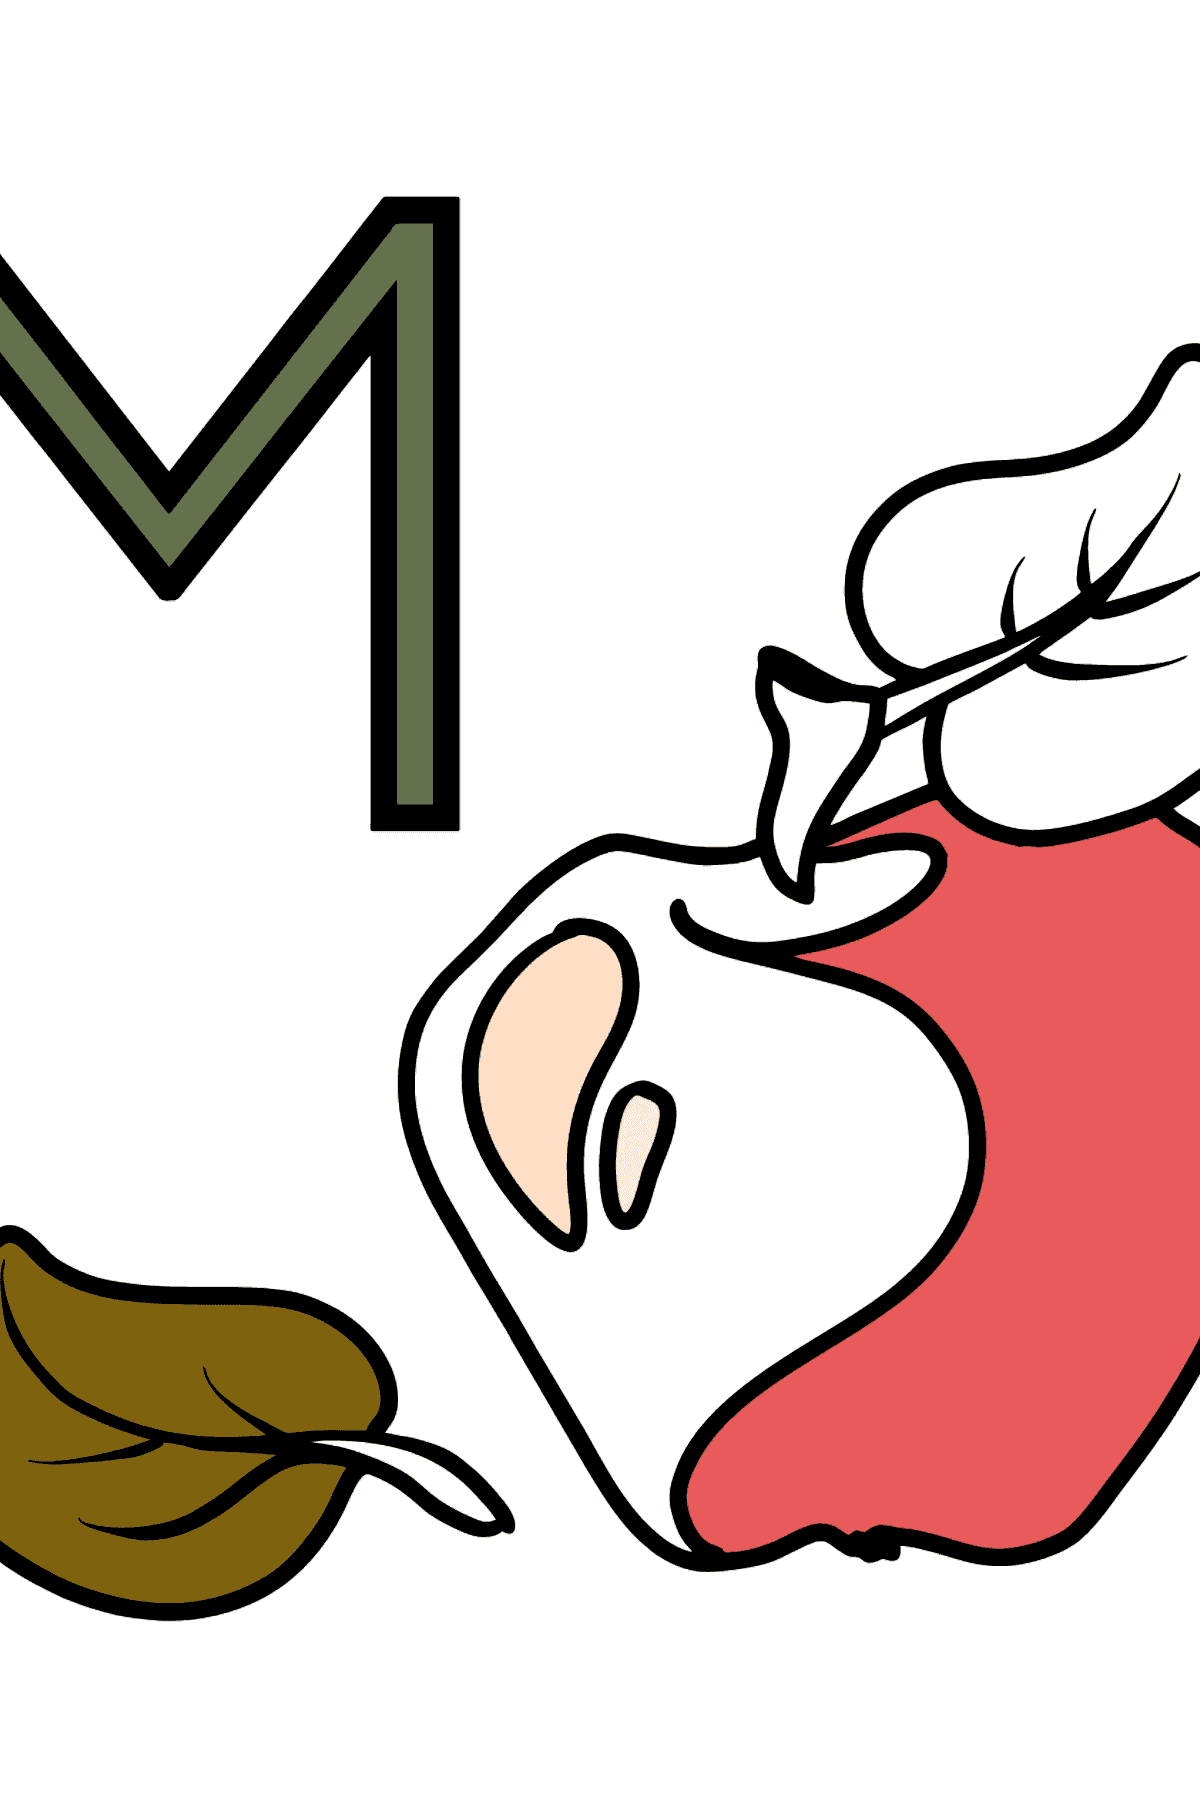 Spanish Letter M coloring pages - MANZANA - Coloring Pages for Kids